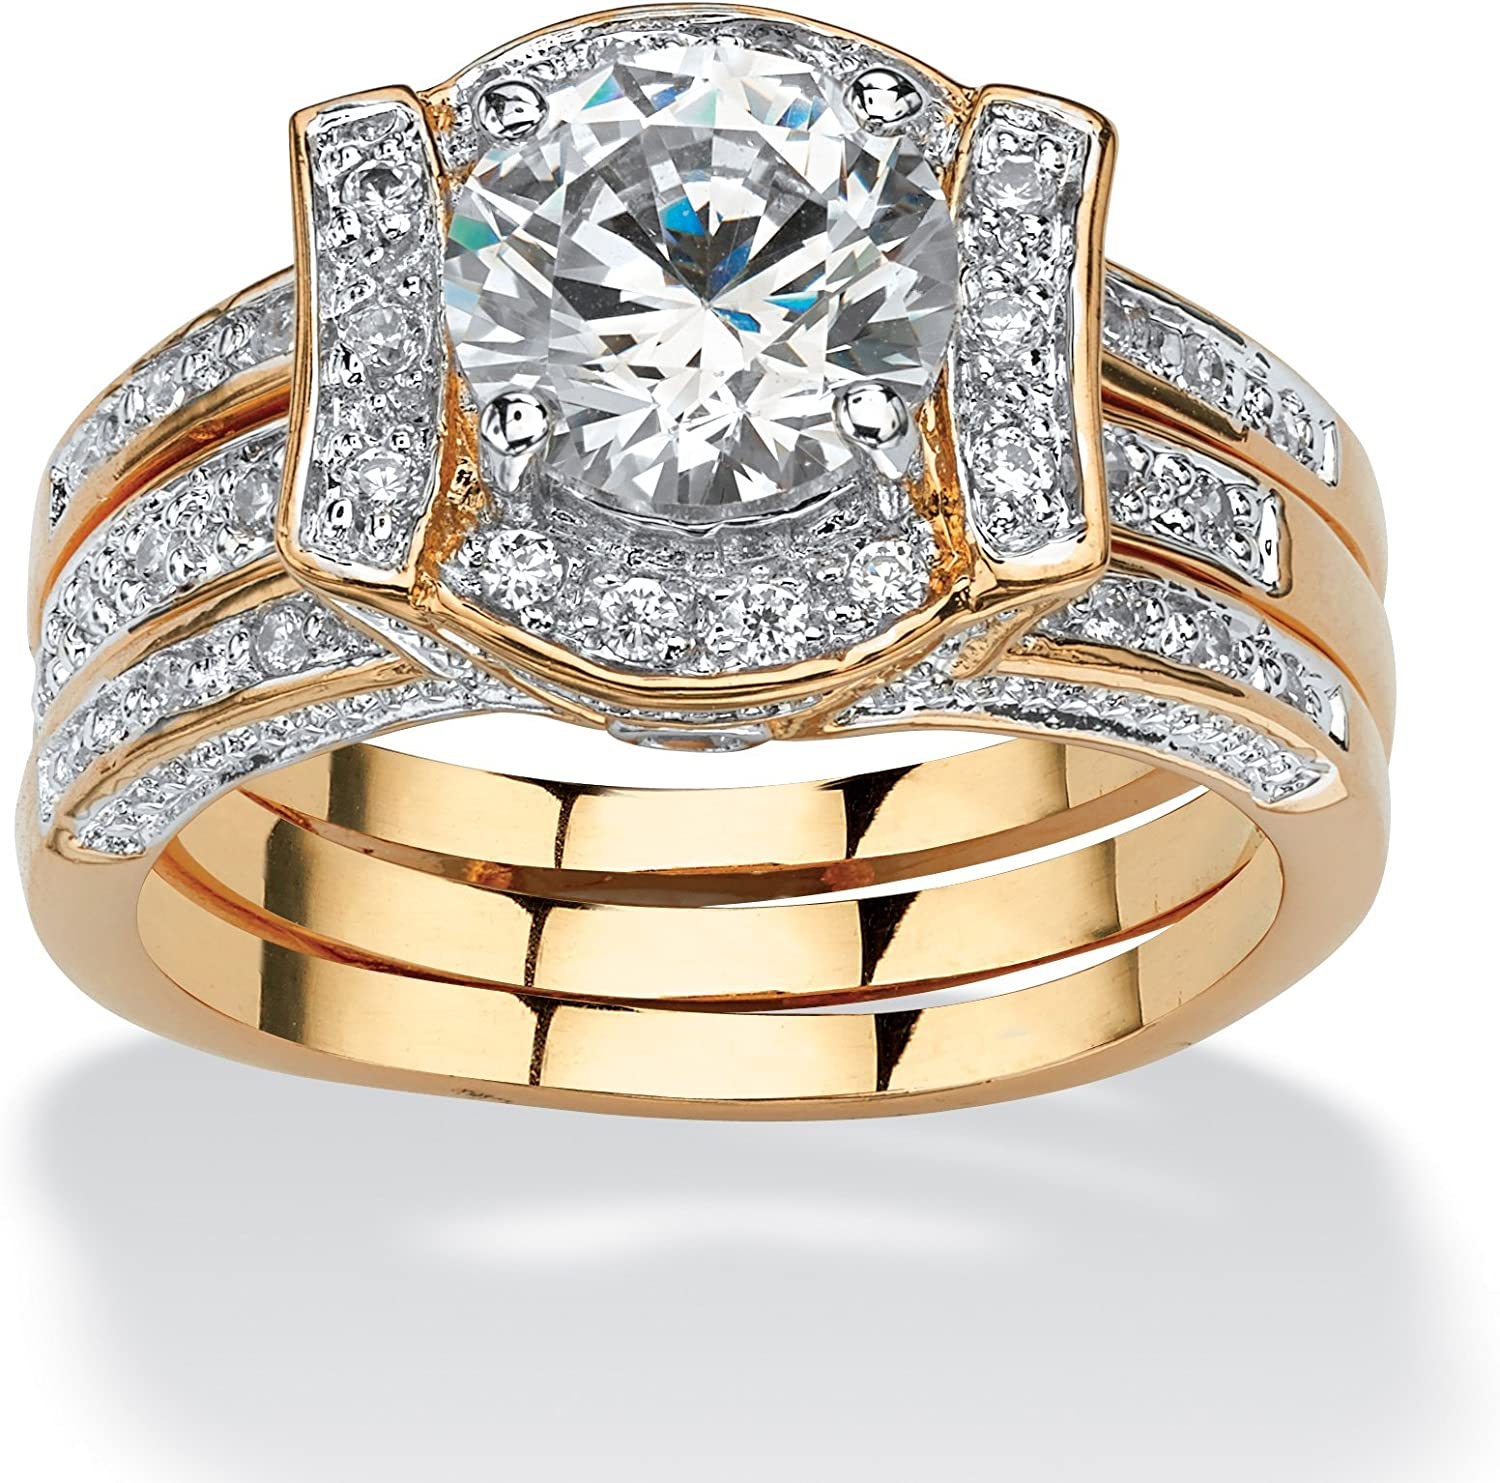 Palm Beach Jewelry 18K Yellow Gold Plated Round Cubic Zirconia Vintage Style Jacket Bridal Ring Set